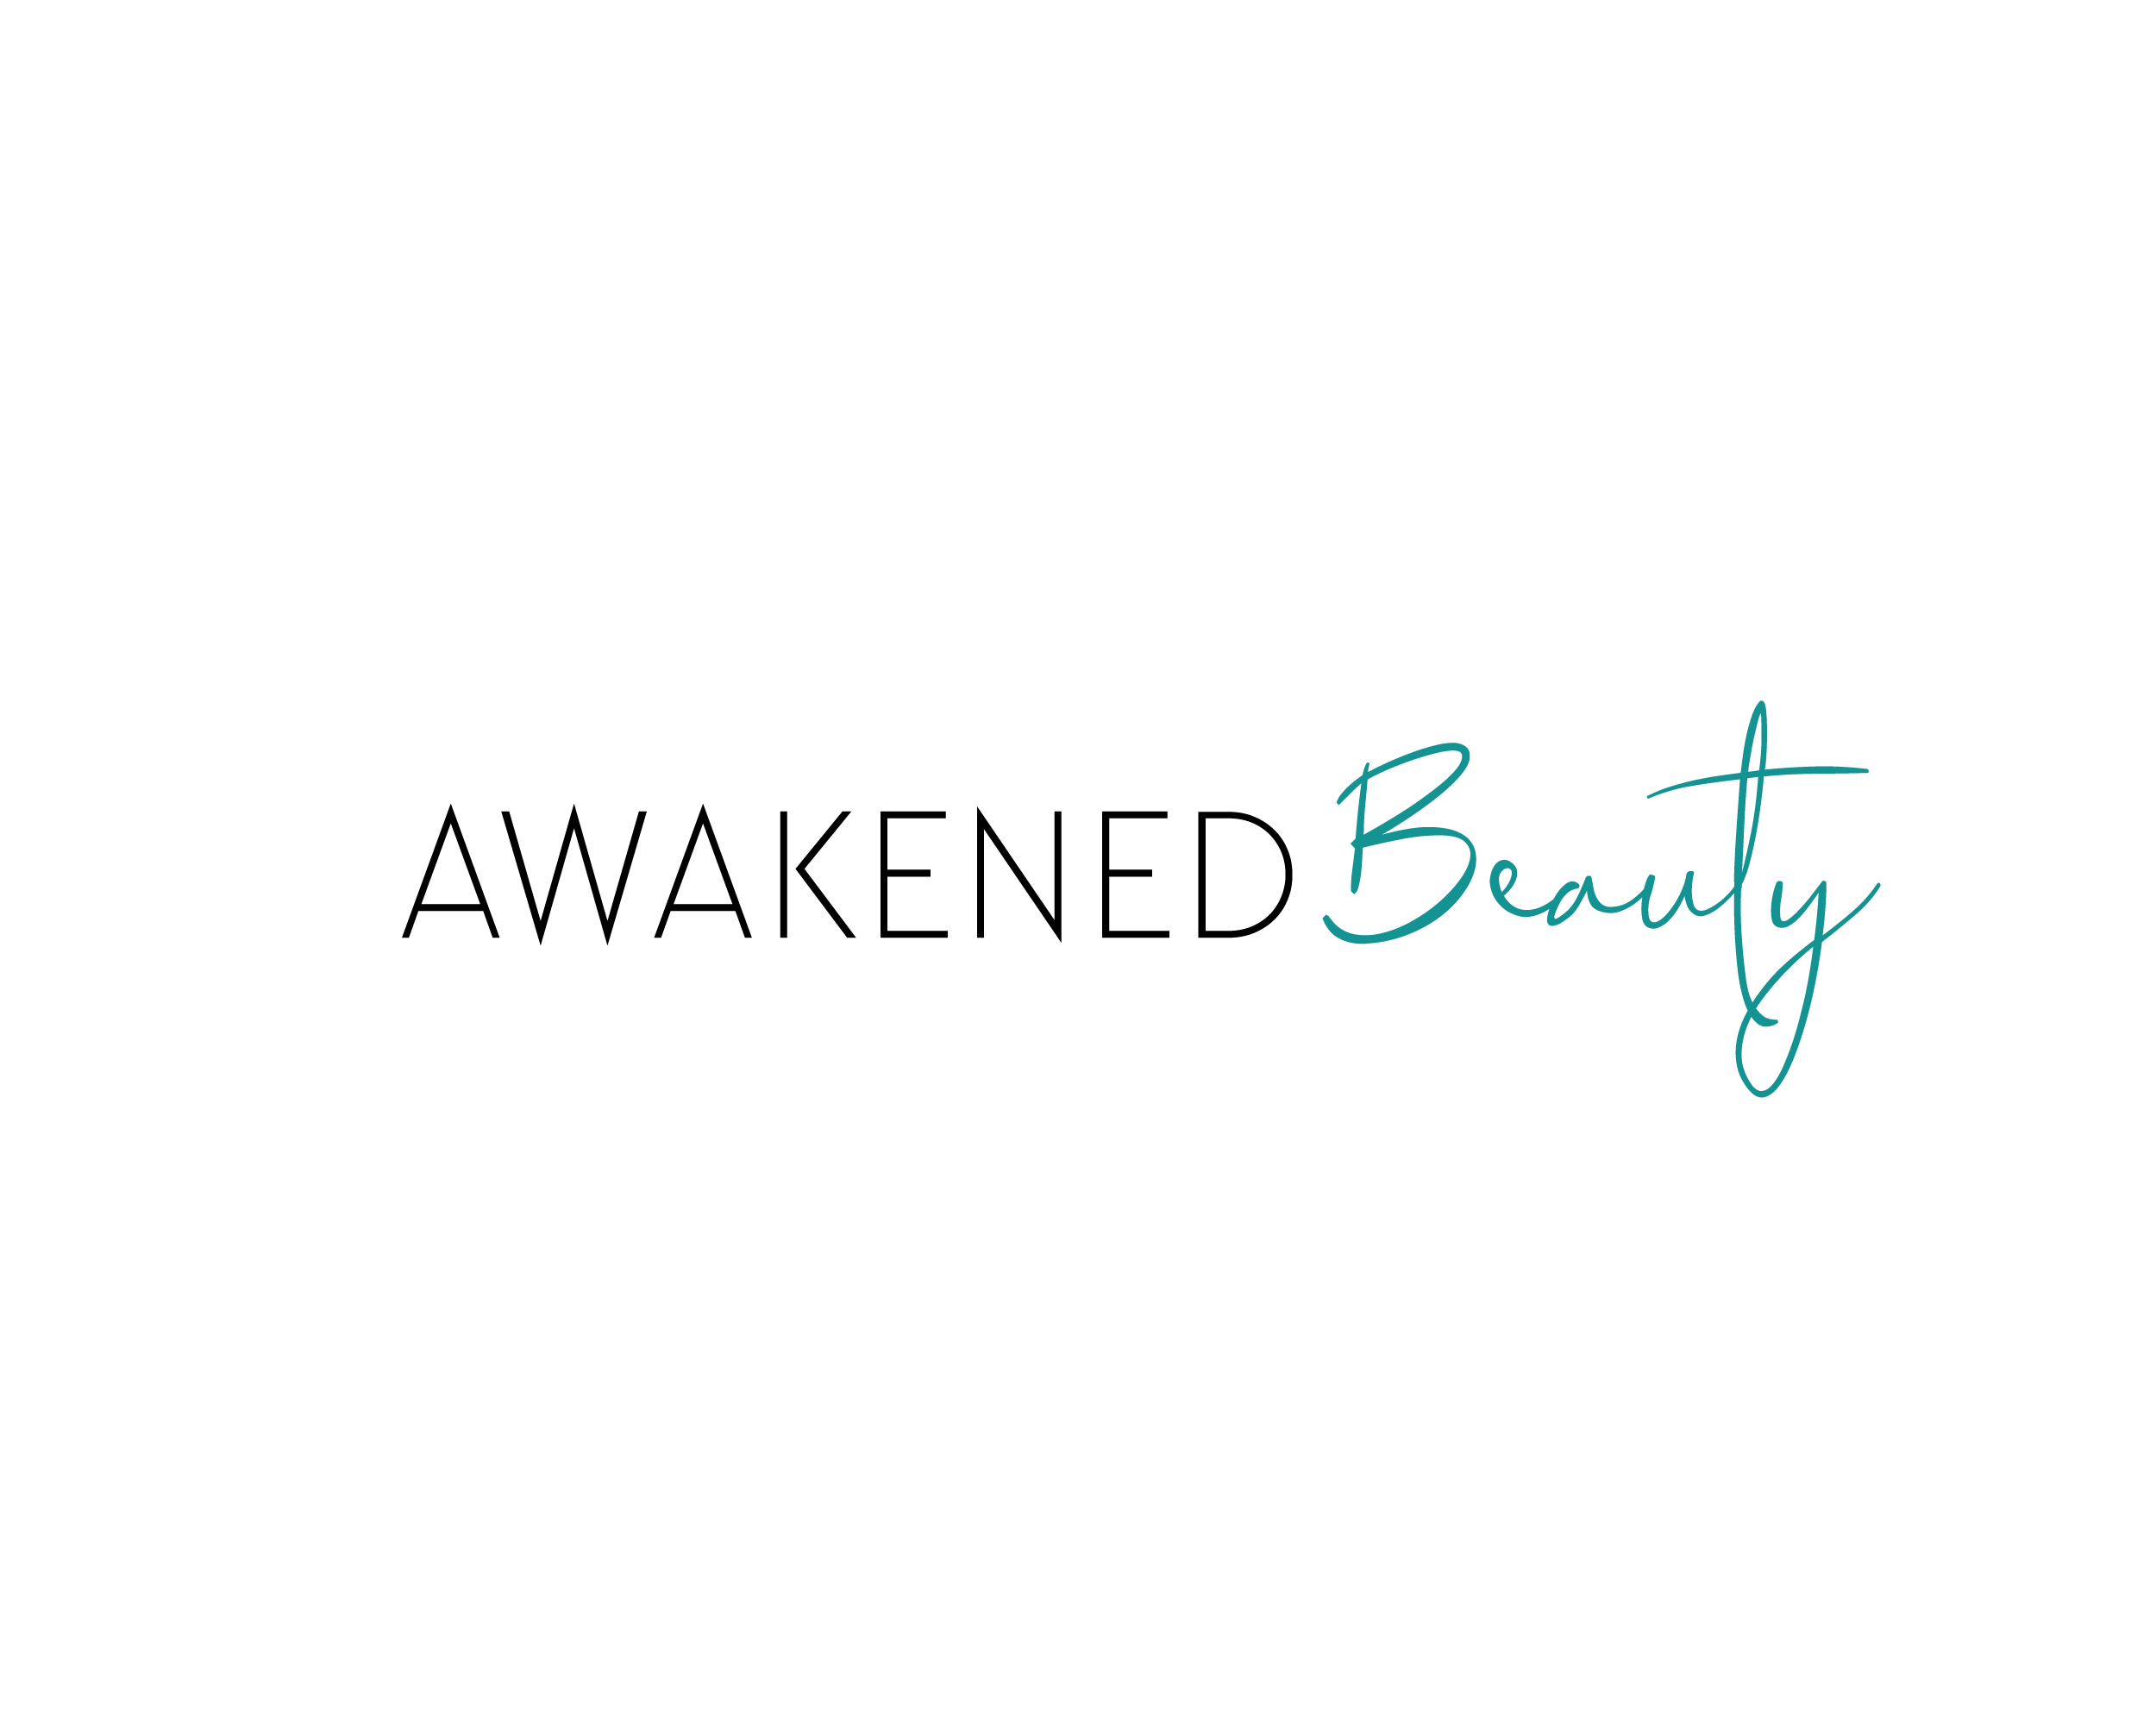 Awakened Beauty, a mobile beauty company